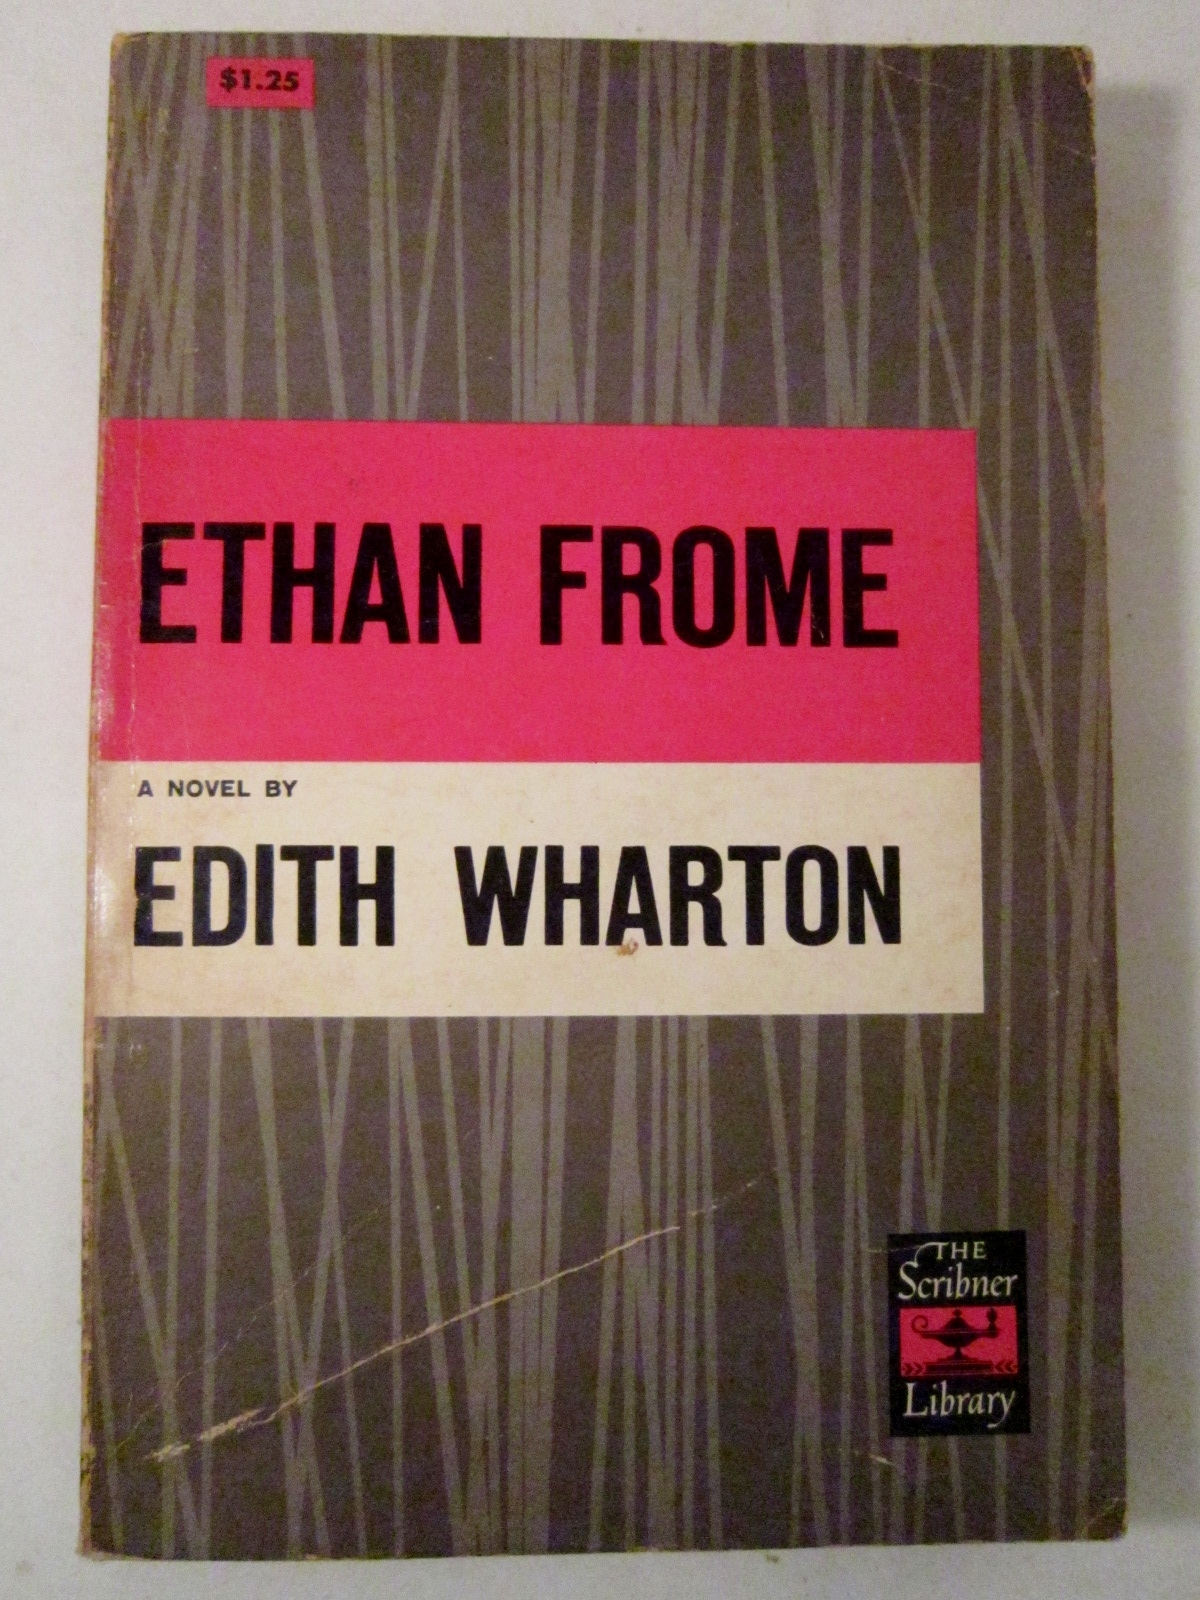 a summary of the novel ethan frome by edith wharton Ethan frome will stay with you long after you put this book down  edith  wharton brings to life a story that will entertain you and one that you will never  forget, as each character is so  a general review of ethan frome by edith  wharton.